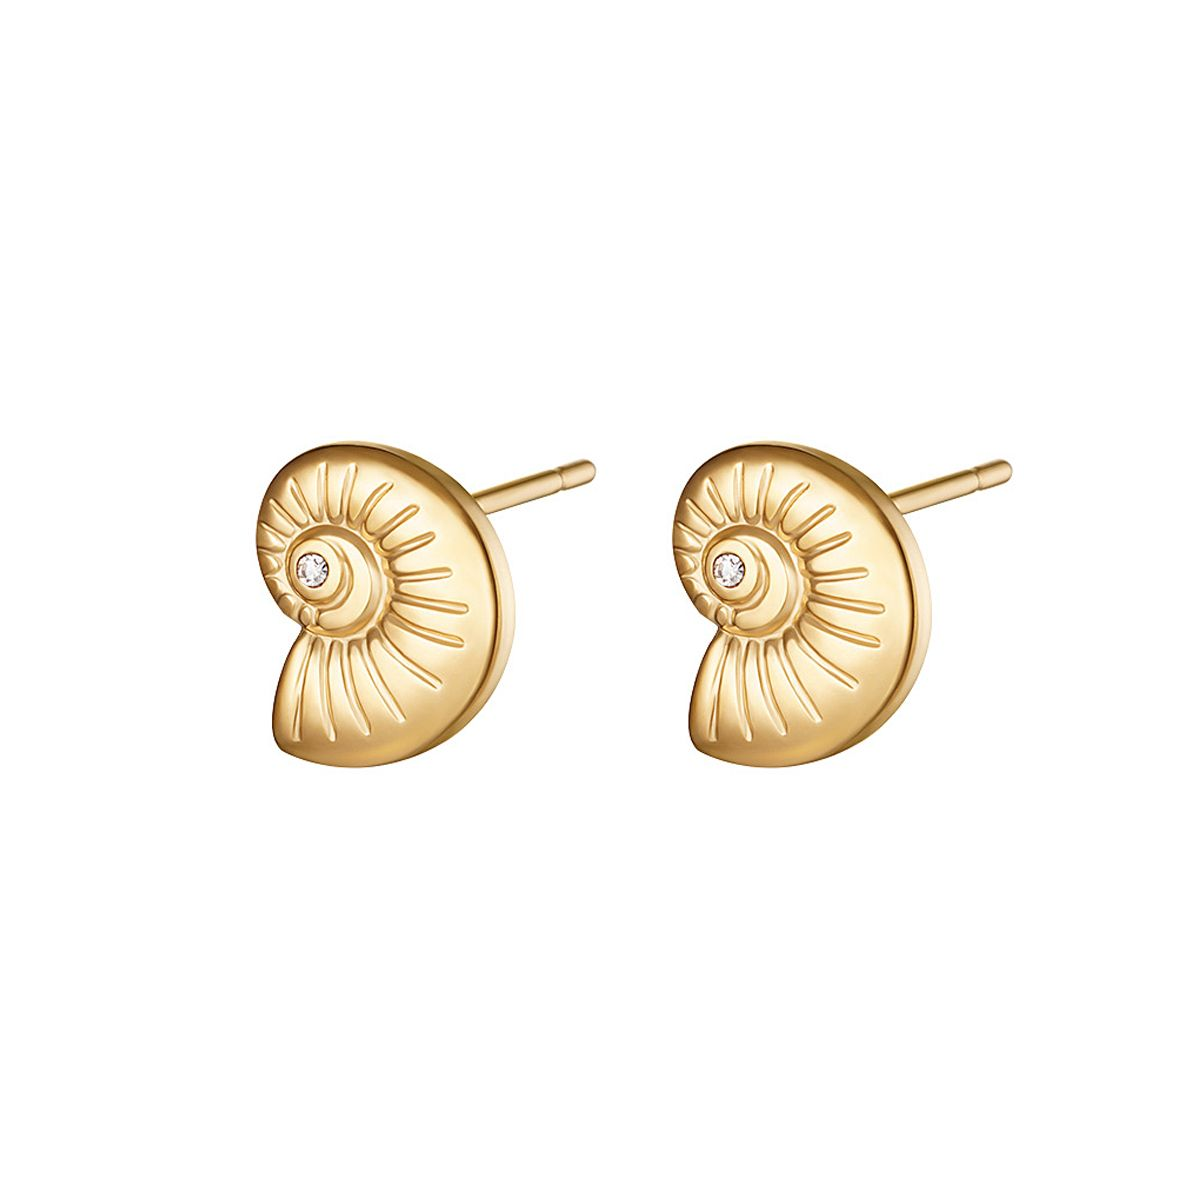 Twisted Shell studs